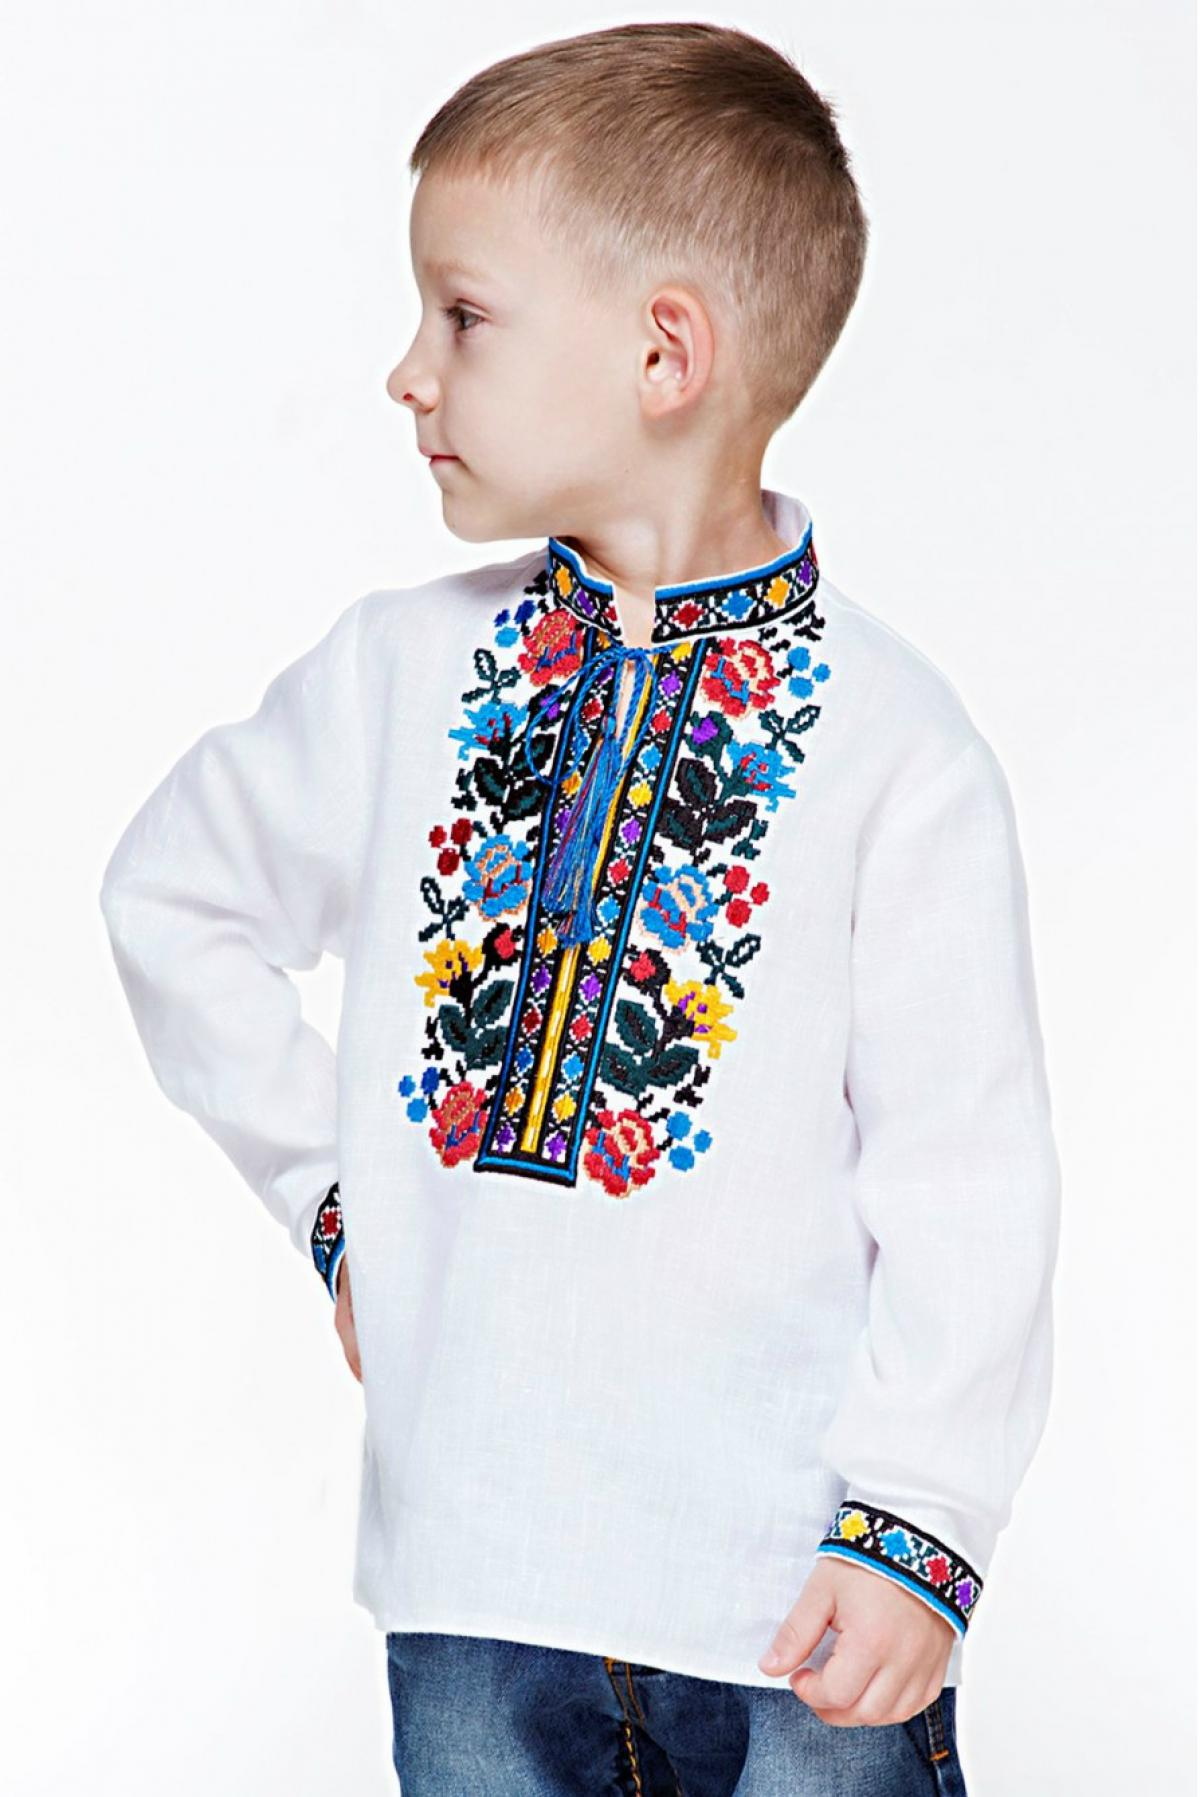 Embroidery for a boy with a Borschivskiy pattern. Photo №2. | Narodnyi dim Ukraine